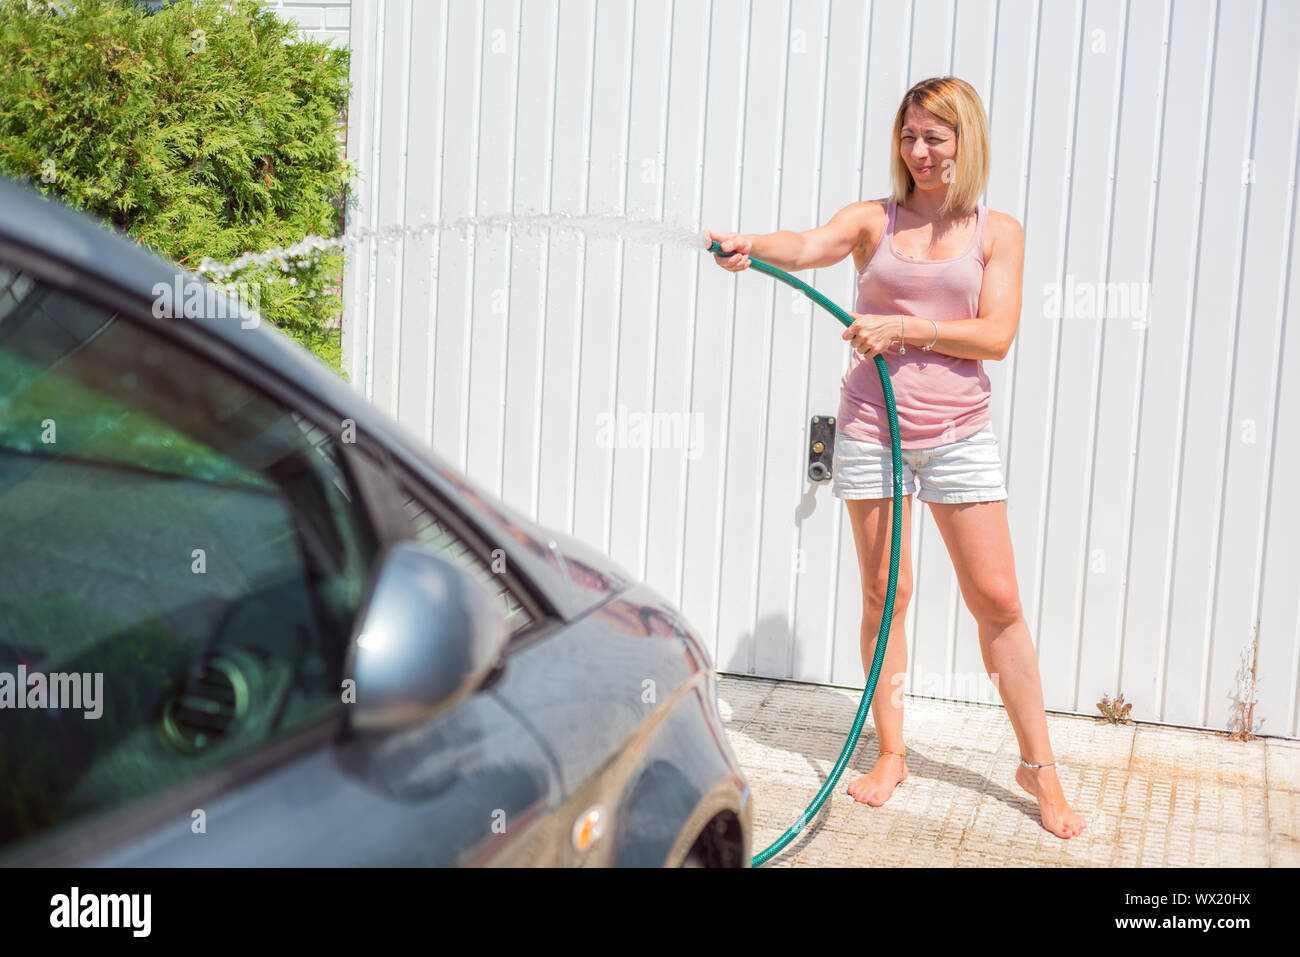 Young woman washing car with hose. Car detailing. Stock Photo